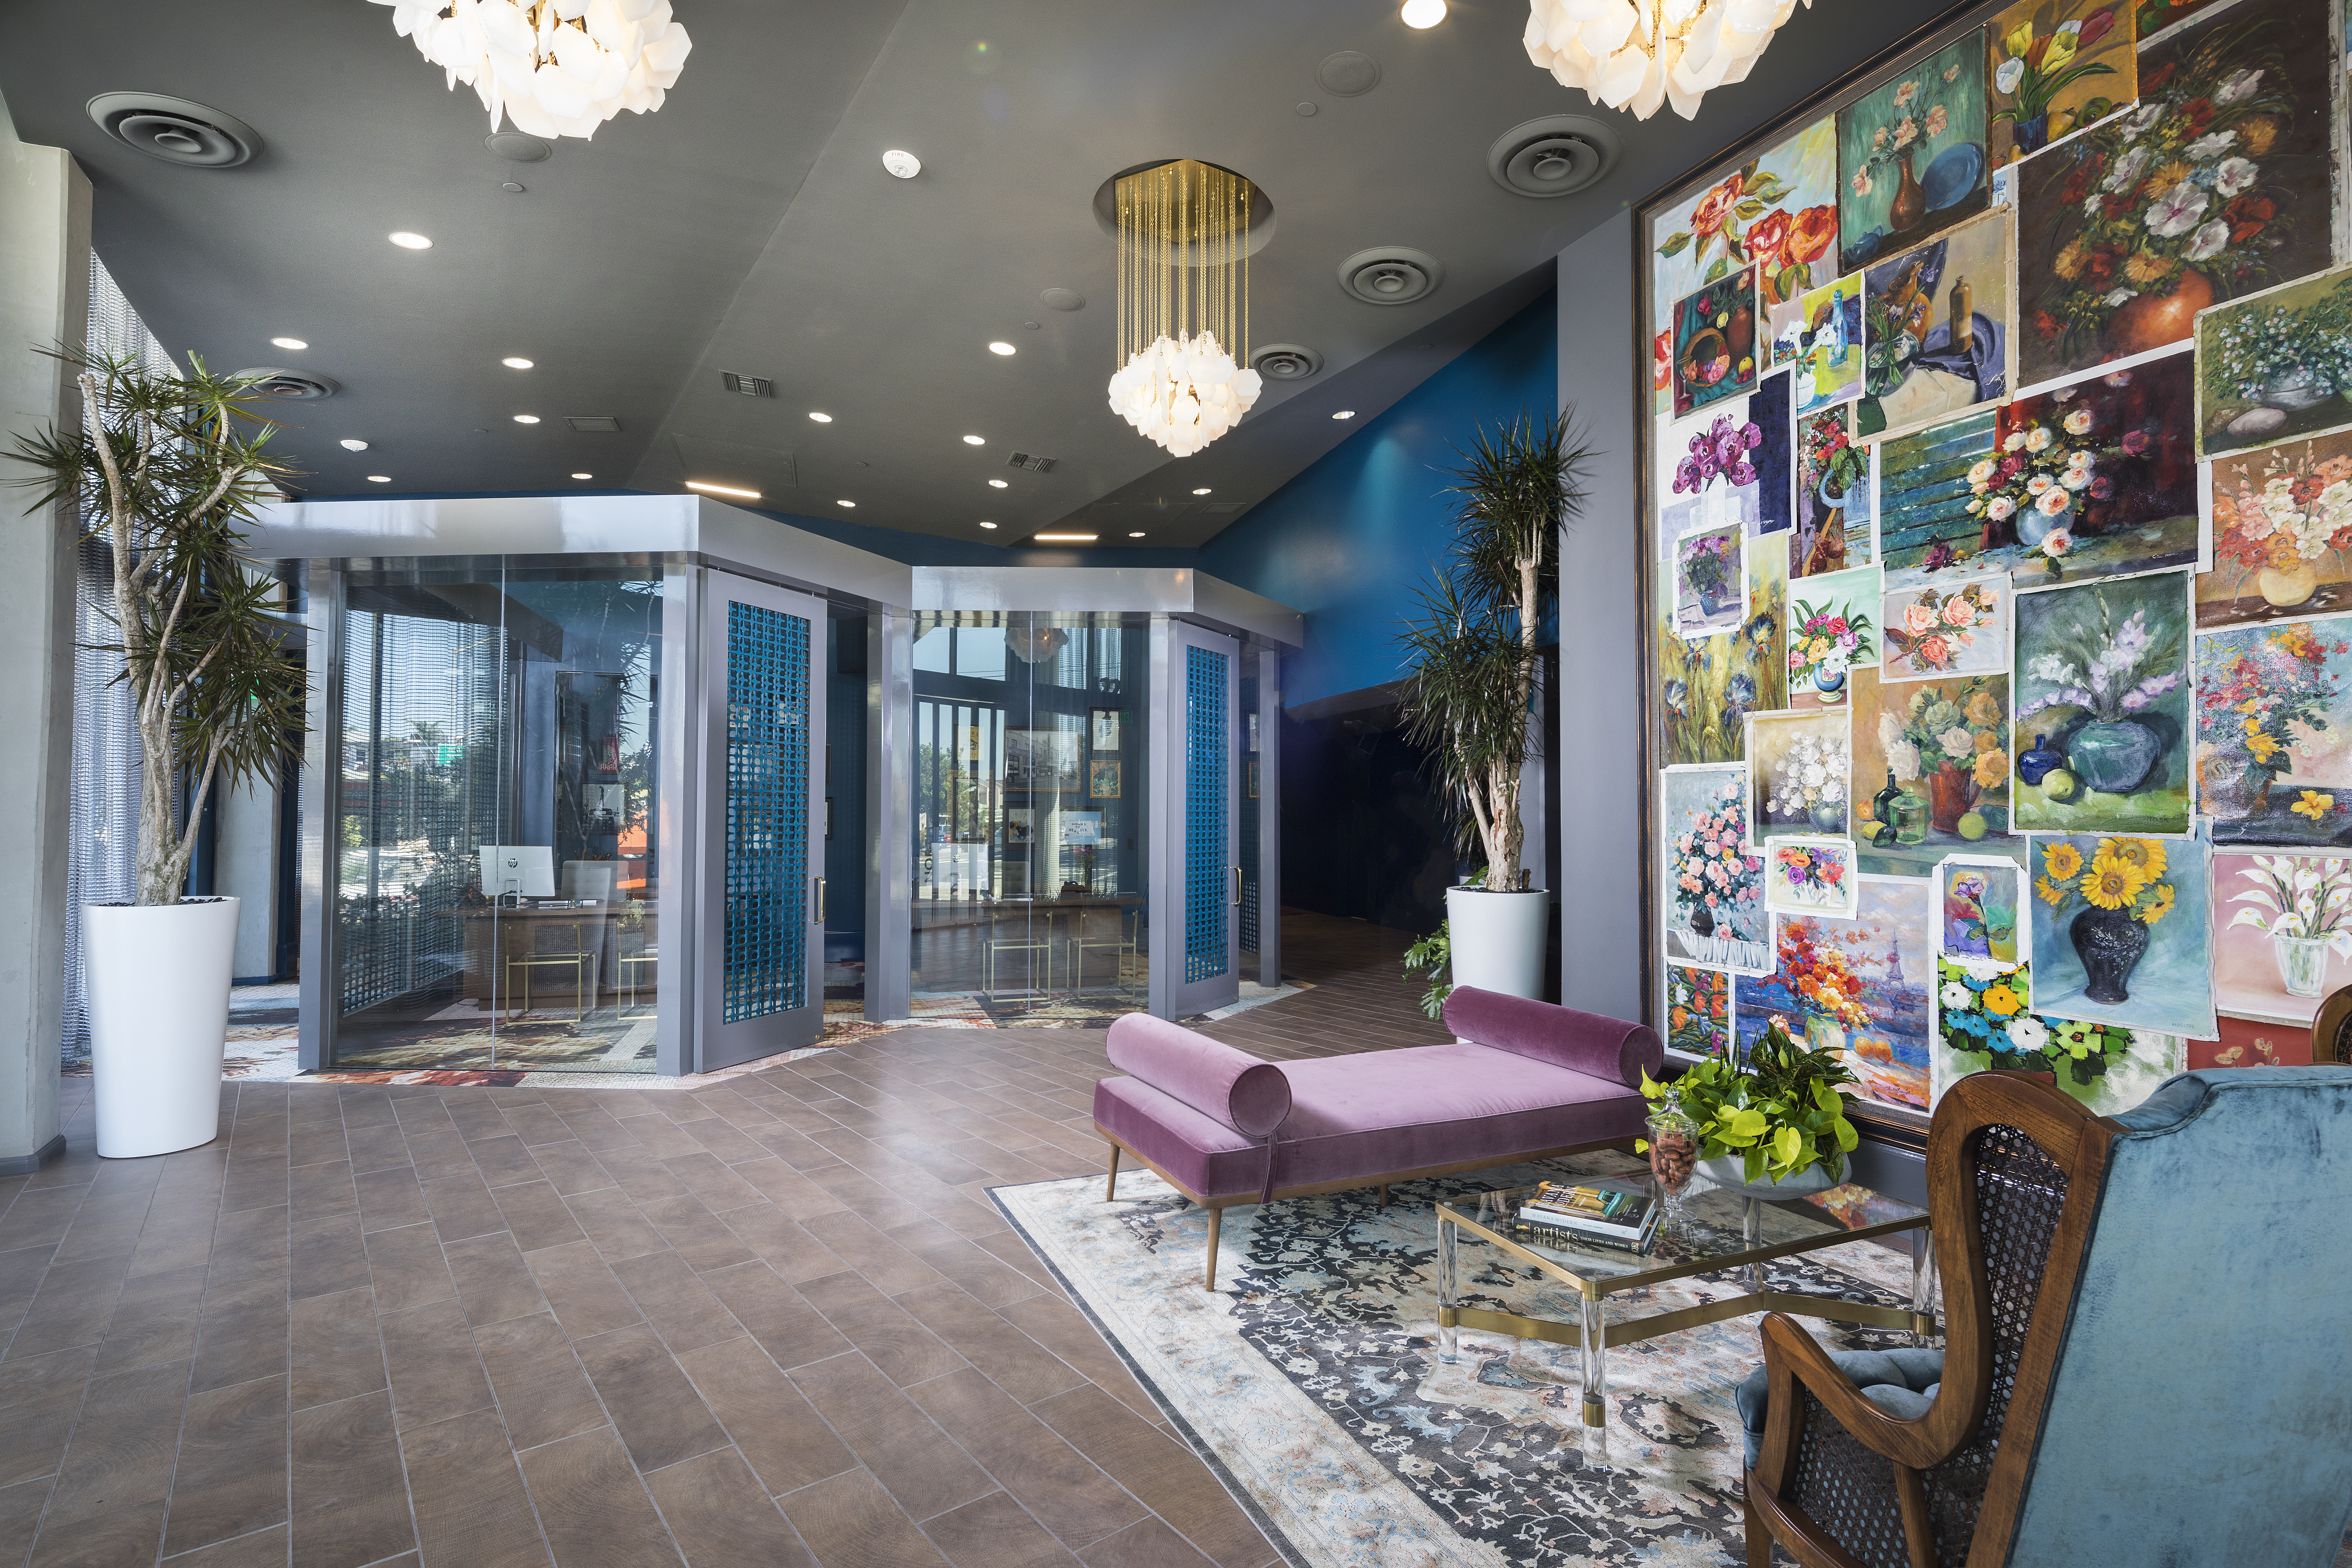 Why Hoteliers Need An Authentic Brand Story